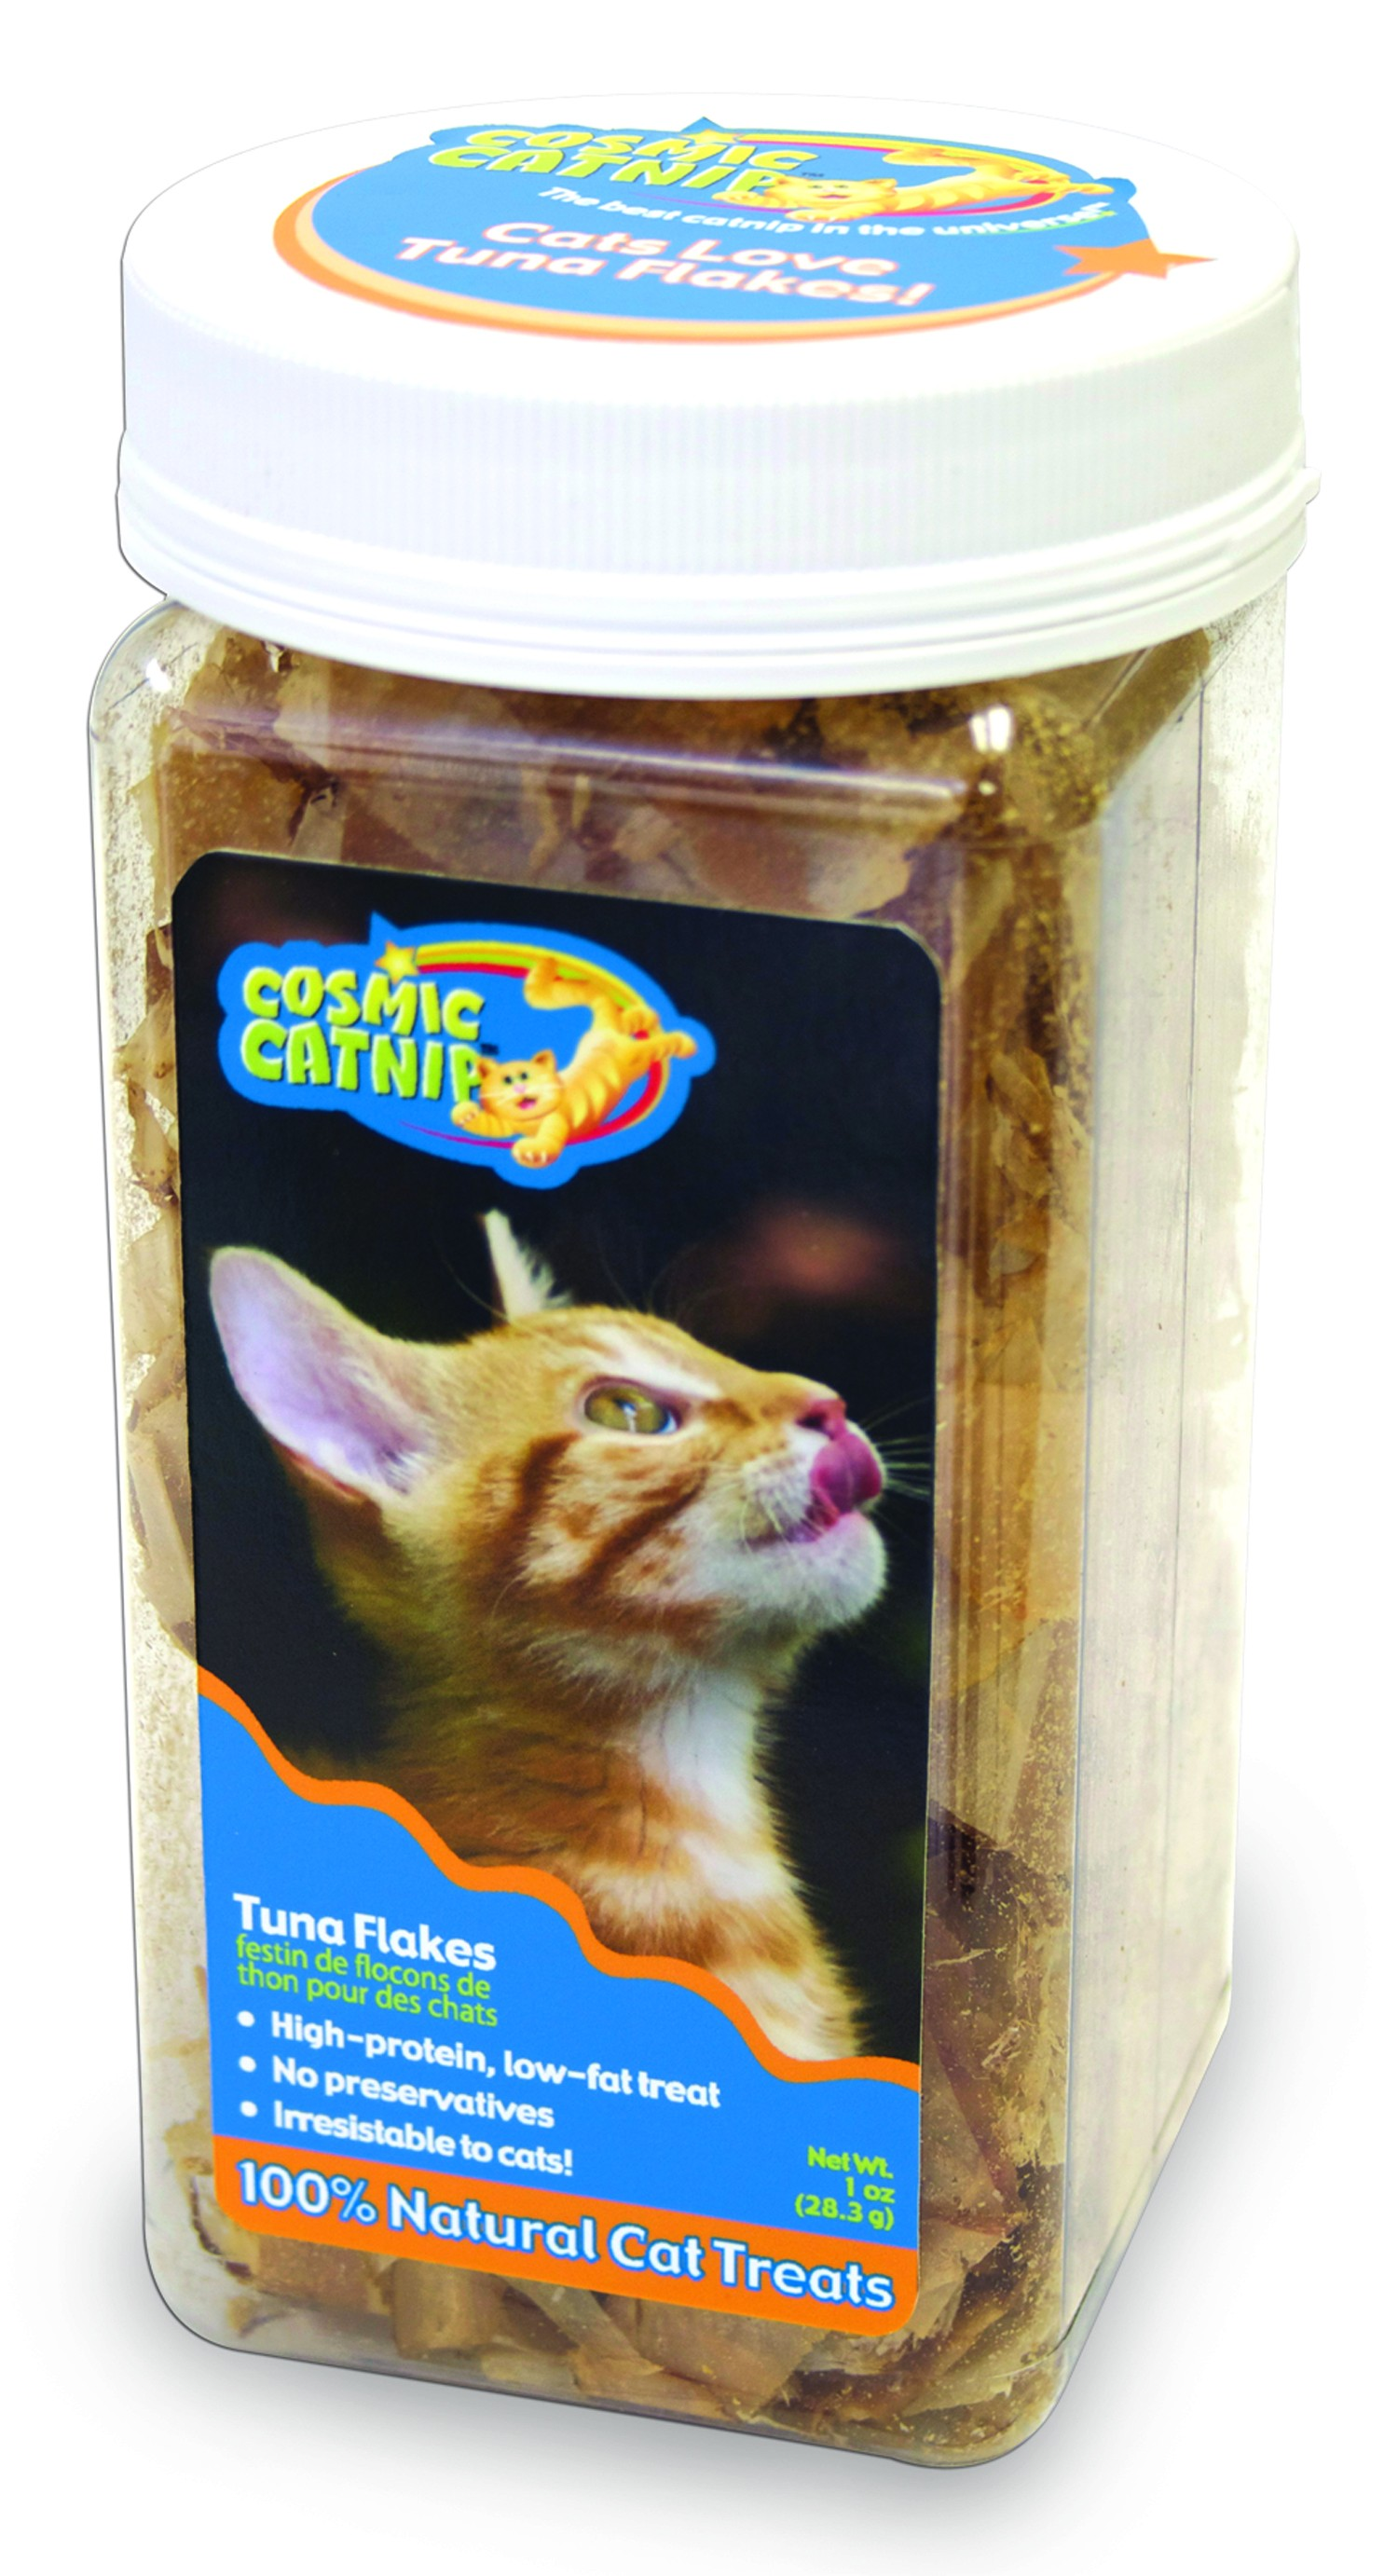 COSMIC CATNIP TUNA FLAKES